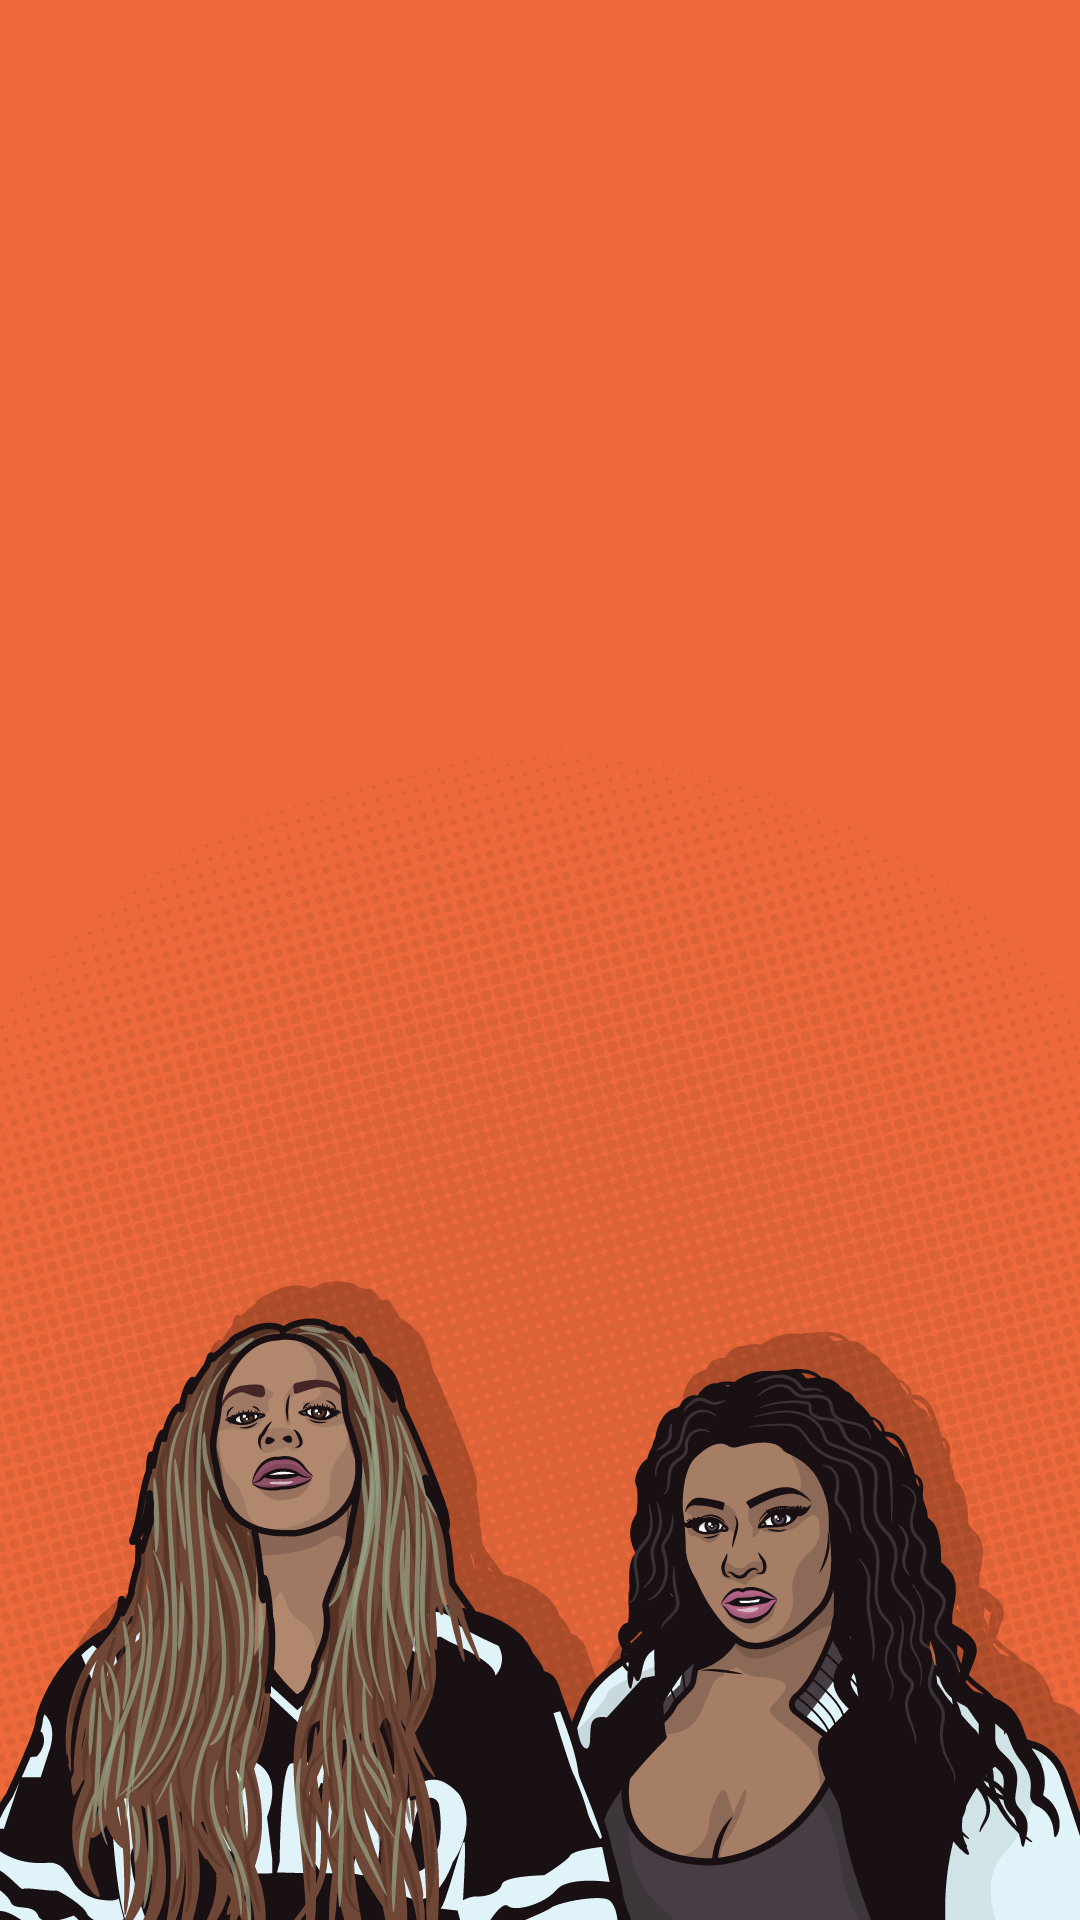 1080x1920 Beyonce And Nicki Minaj Iphone Wallpaper 7+ - Page 3 of 3 - dzbc.org